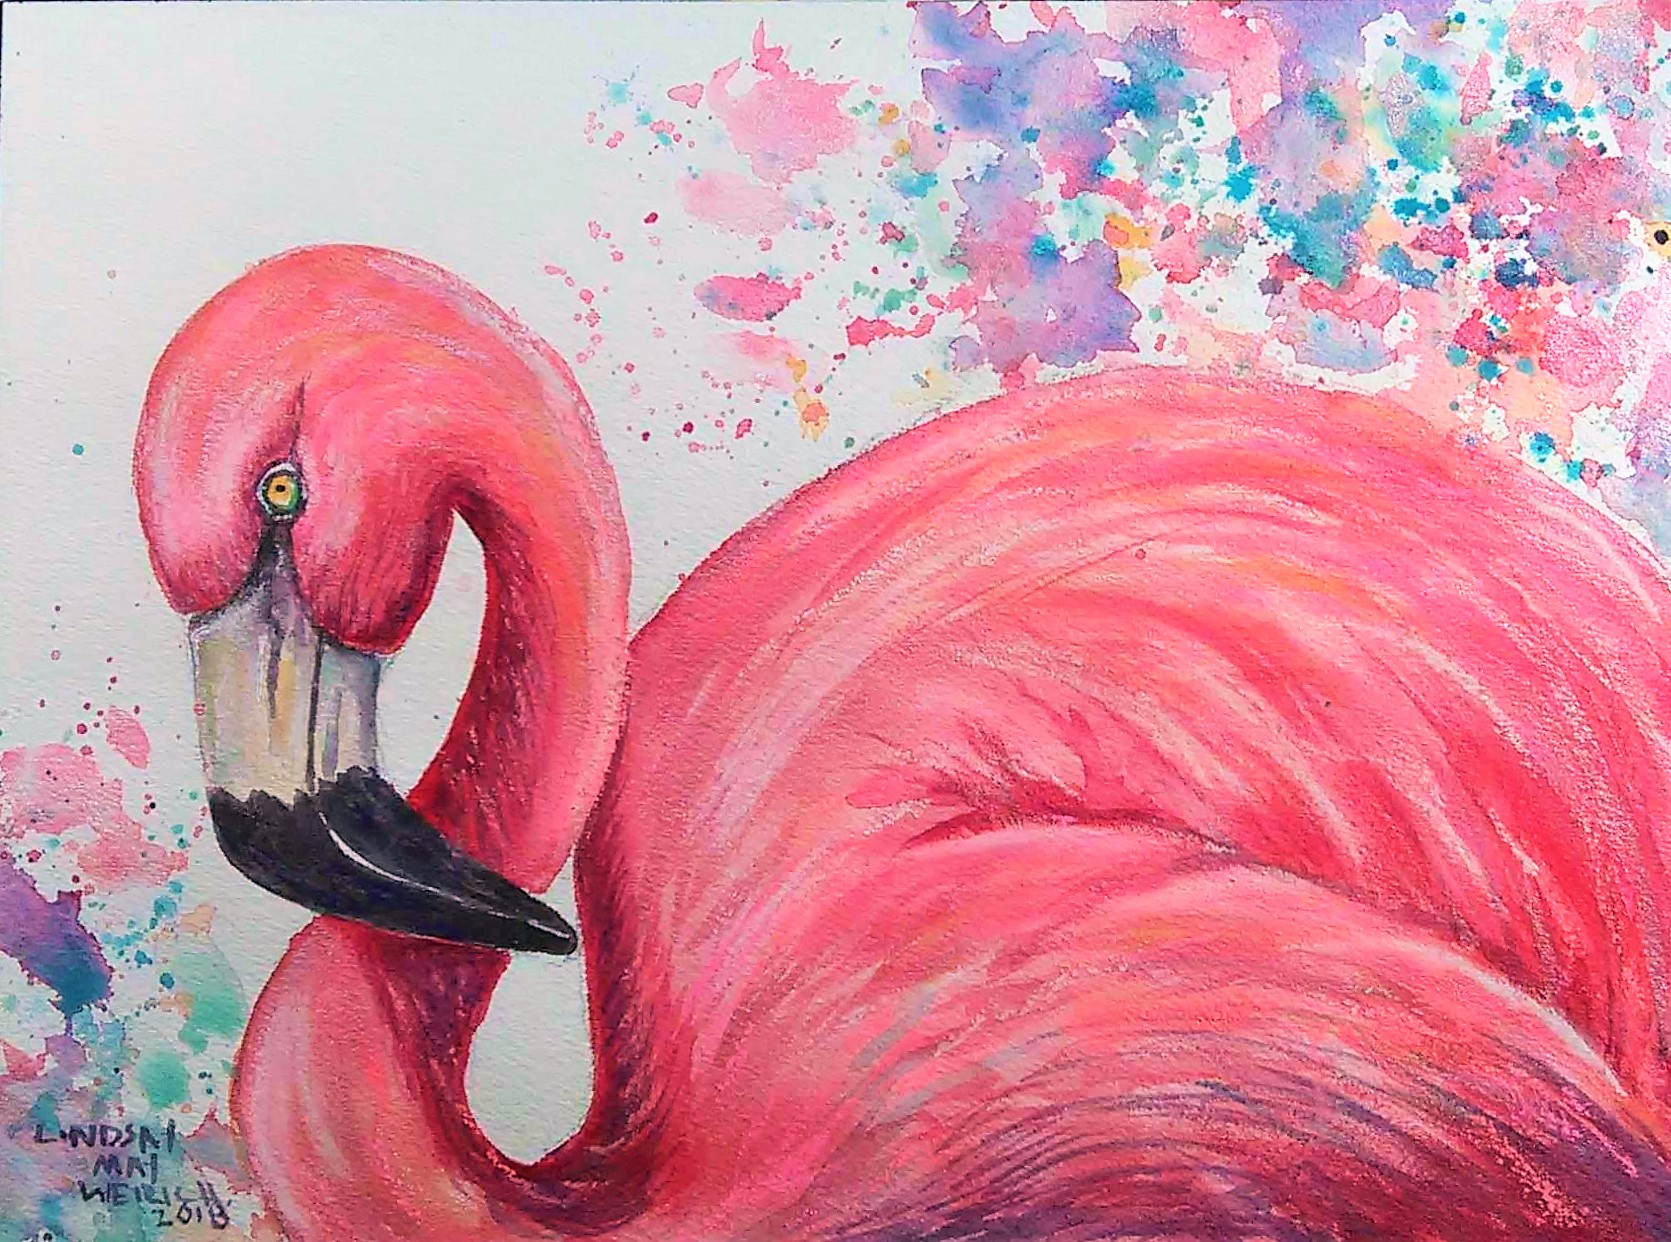 Let's Paint a Colorful Flamingo LIVE Today at 12:30pm ET!